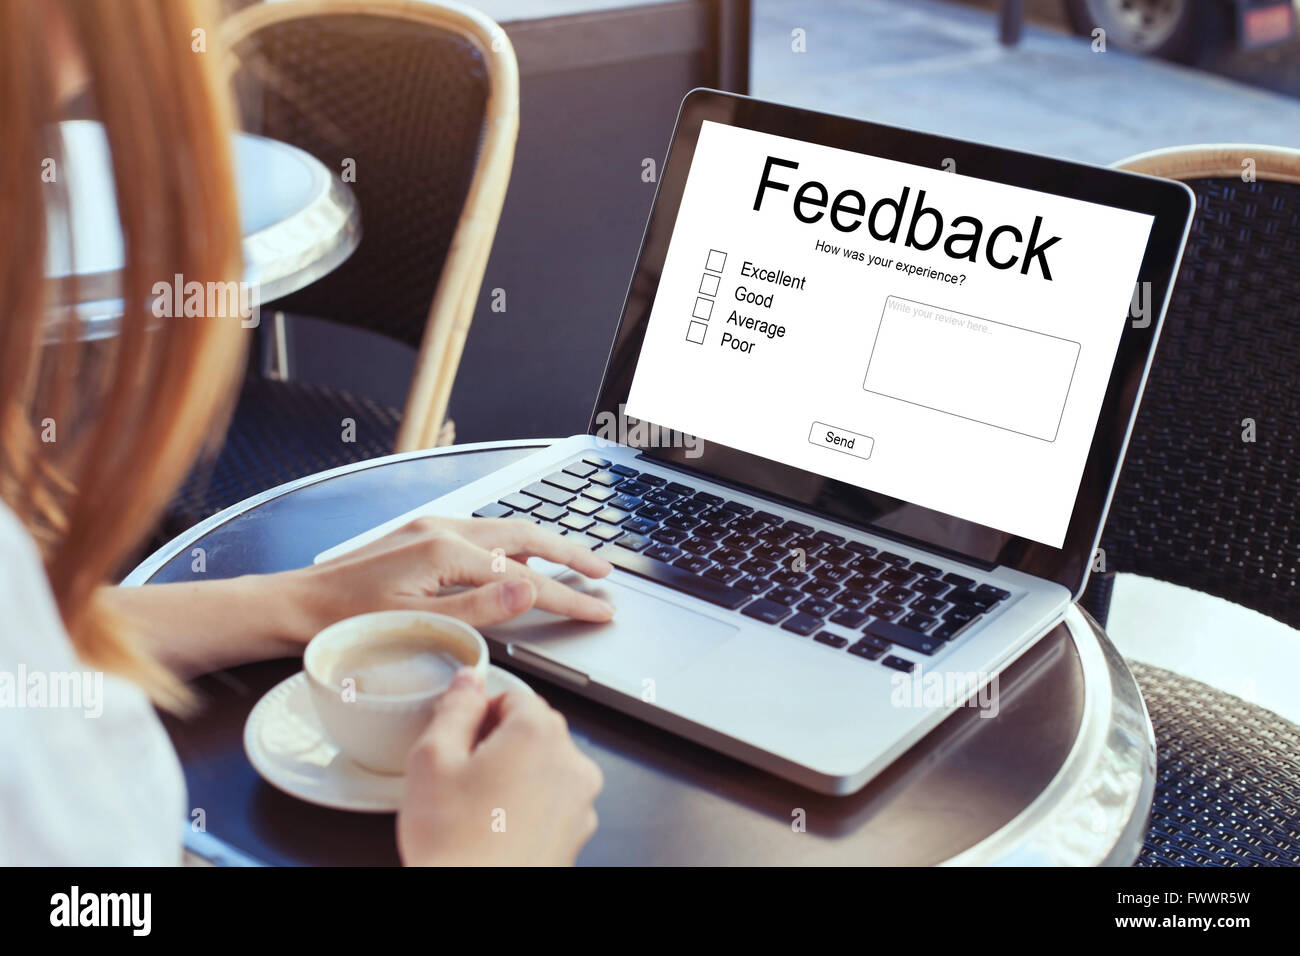 Positive Bewertung Schreiben Feedback Stockfotos And Feedback Bilder Alamy